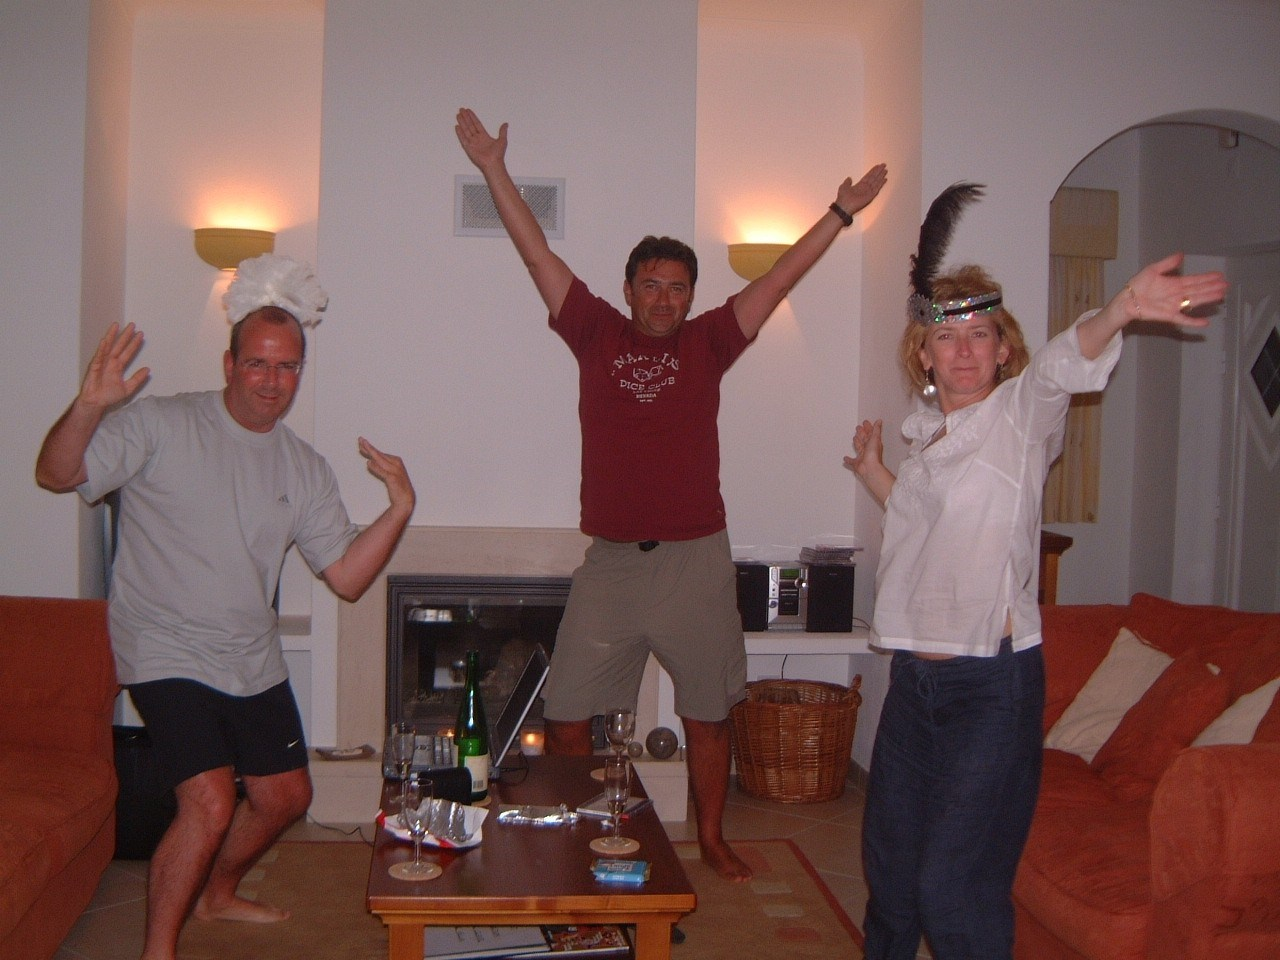 Dancing to YMCA. One of many great days and nights   Yes, Martin is wearing a tiara!